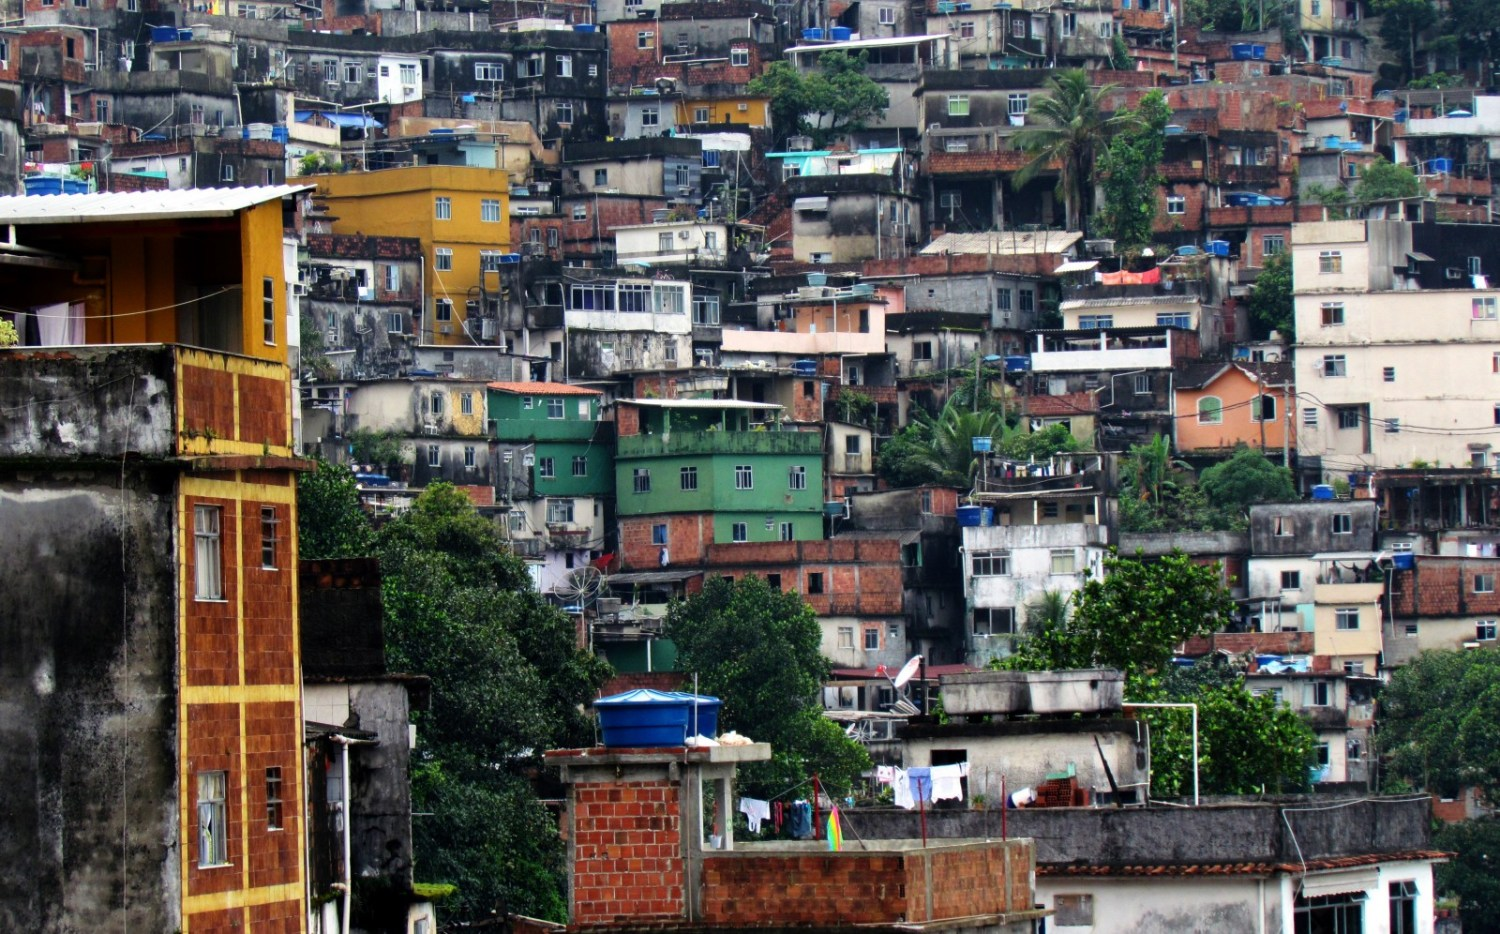 Rio de Janeiro's sprawling favelas often lack access to adequate water and sewage services, compounding pollution problems in Guanabara Bay. Photo courtesy David Berkowitz via Flickr Creative Commons